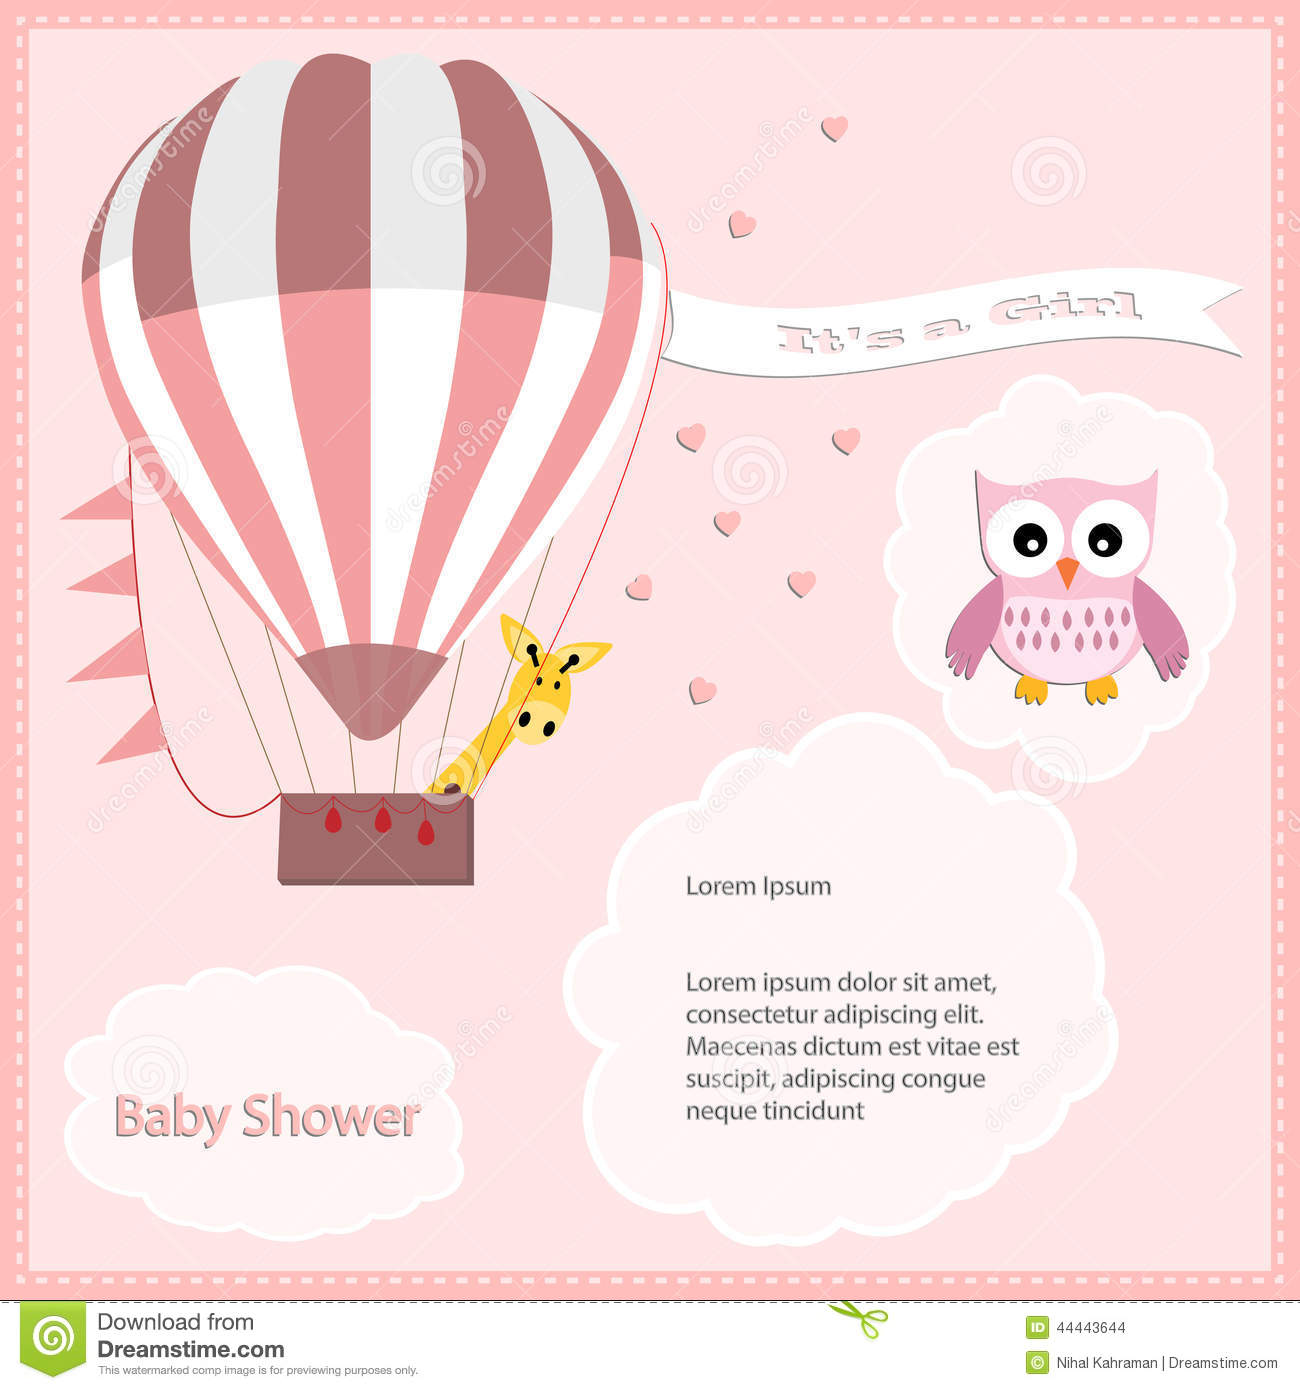 Baby Shower Scroll Invitations for perfect invitations layout